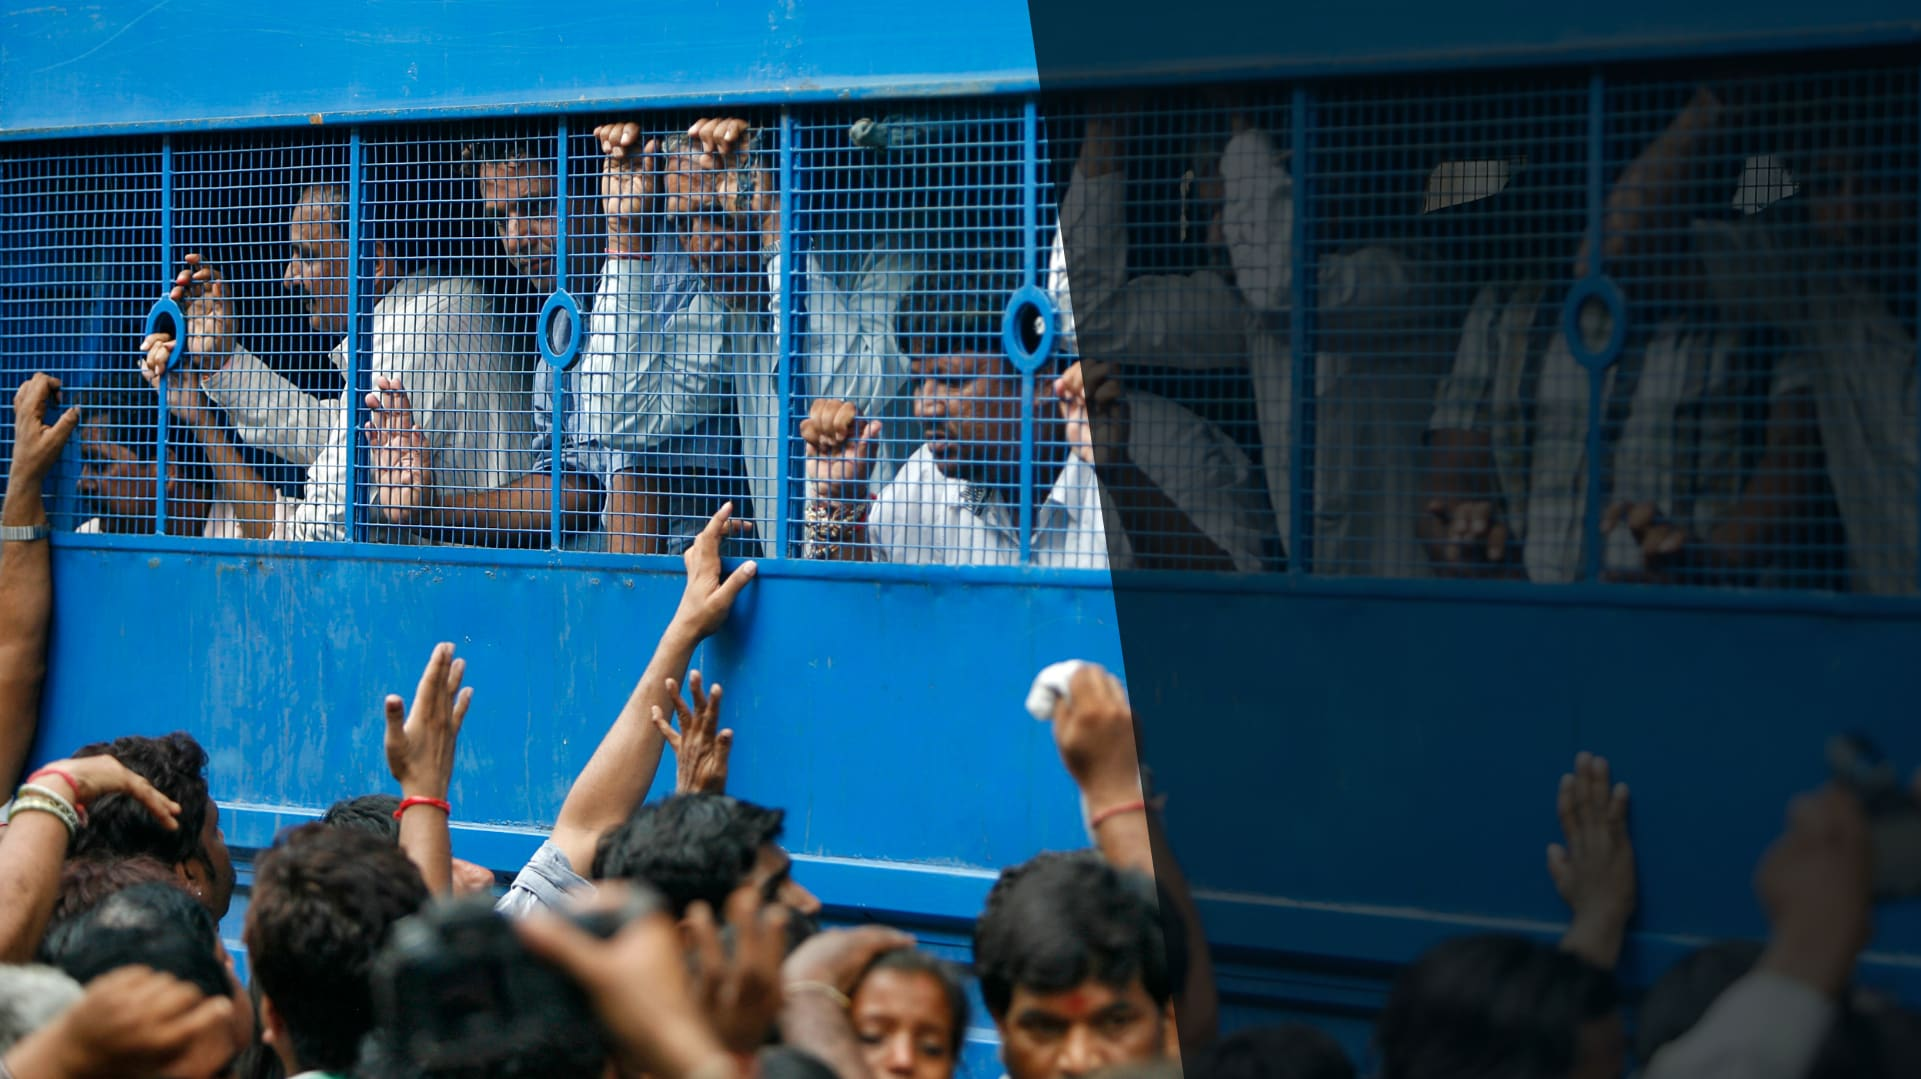 India's criminal justice system: An example of justice delayed, justice denied